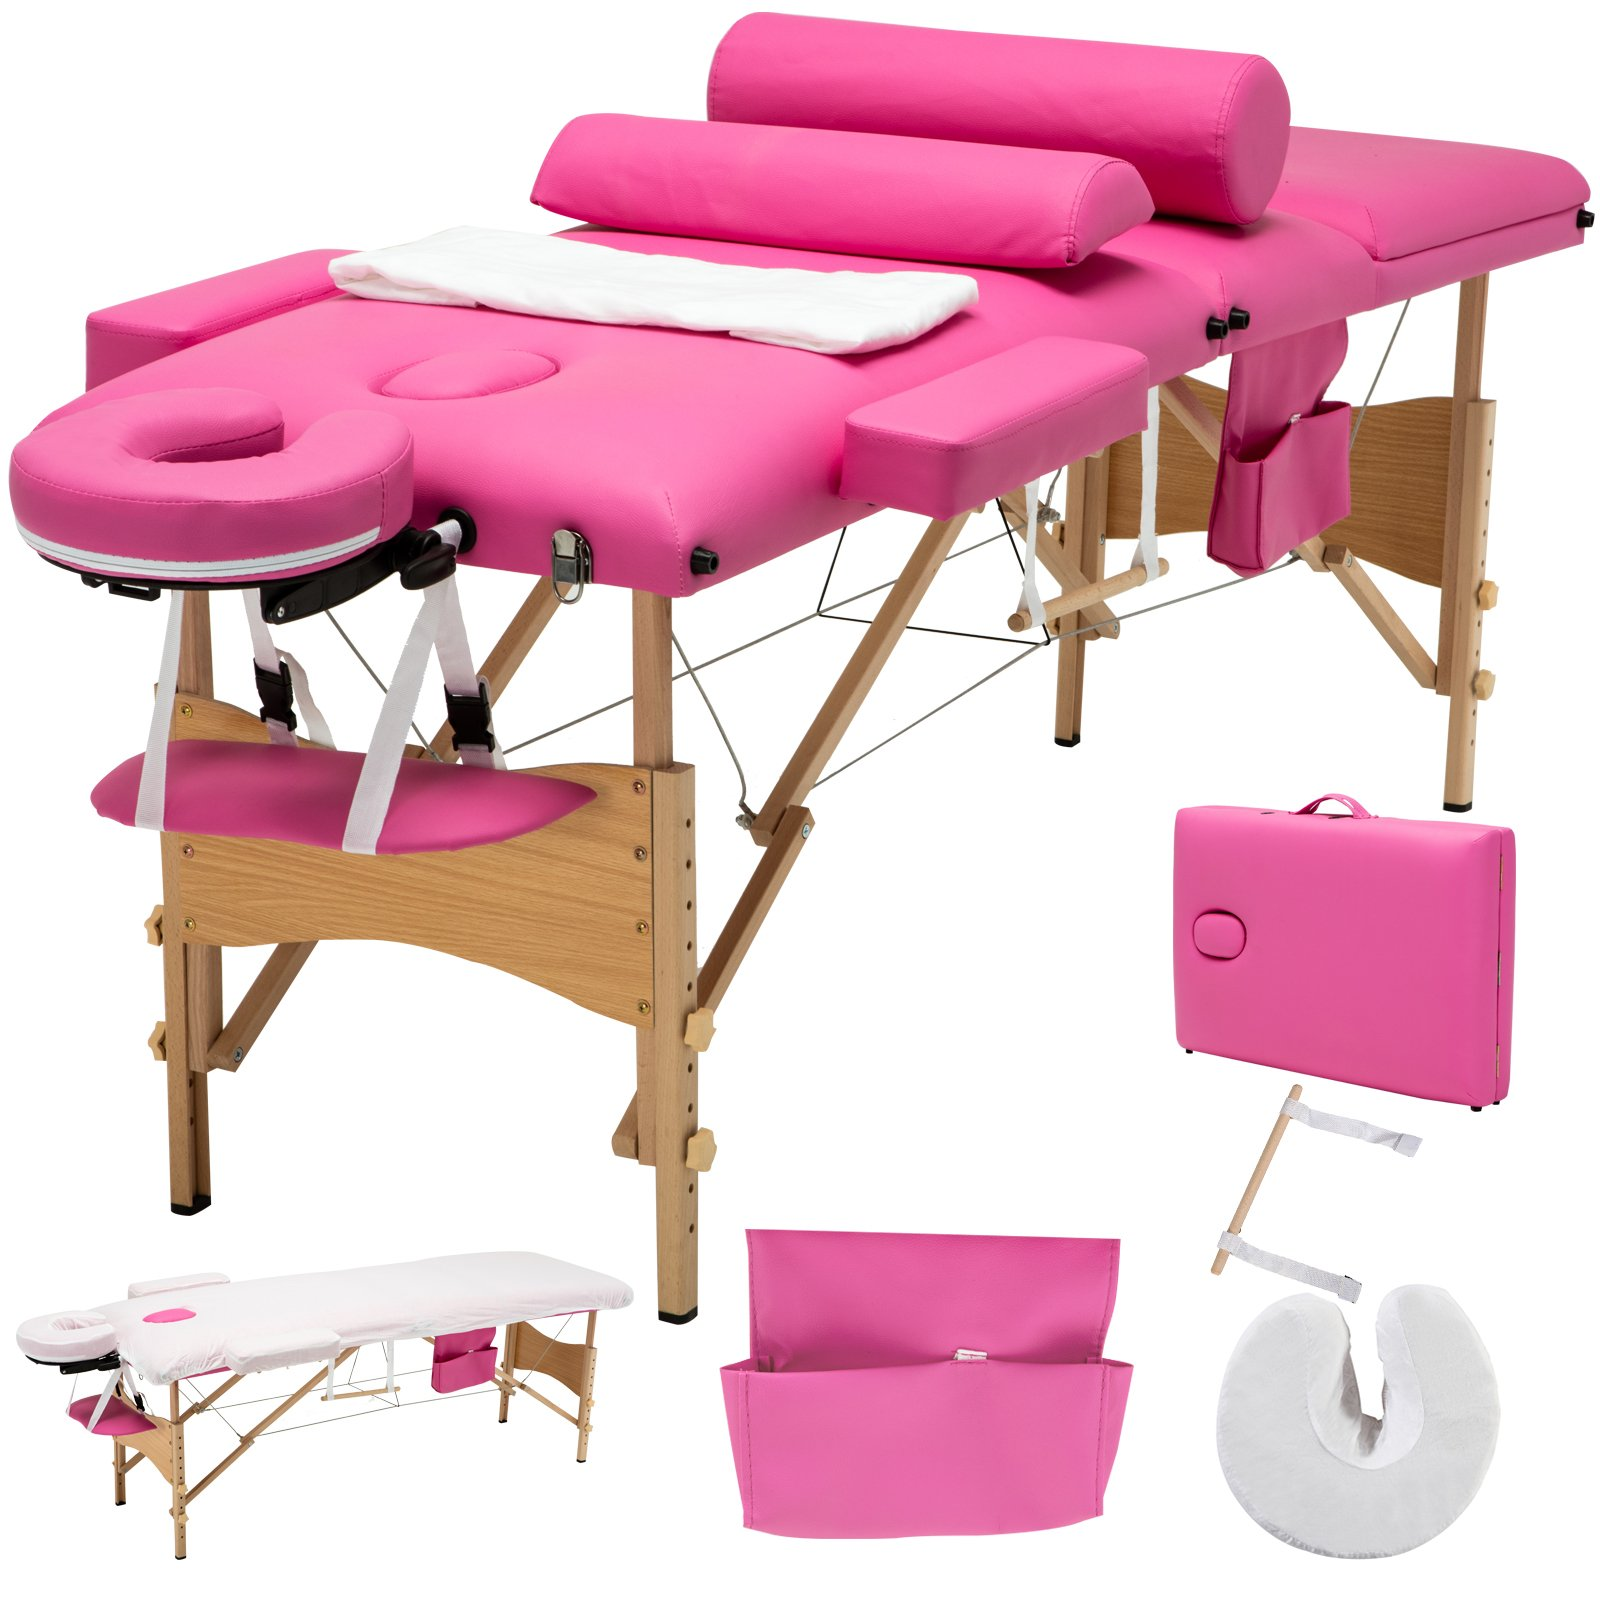 Uenjoy Folding Massage Table 84'' Professional Massage Bed 3 Fold With Additional Accessories, Pink by Uenjoy